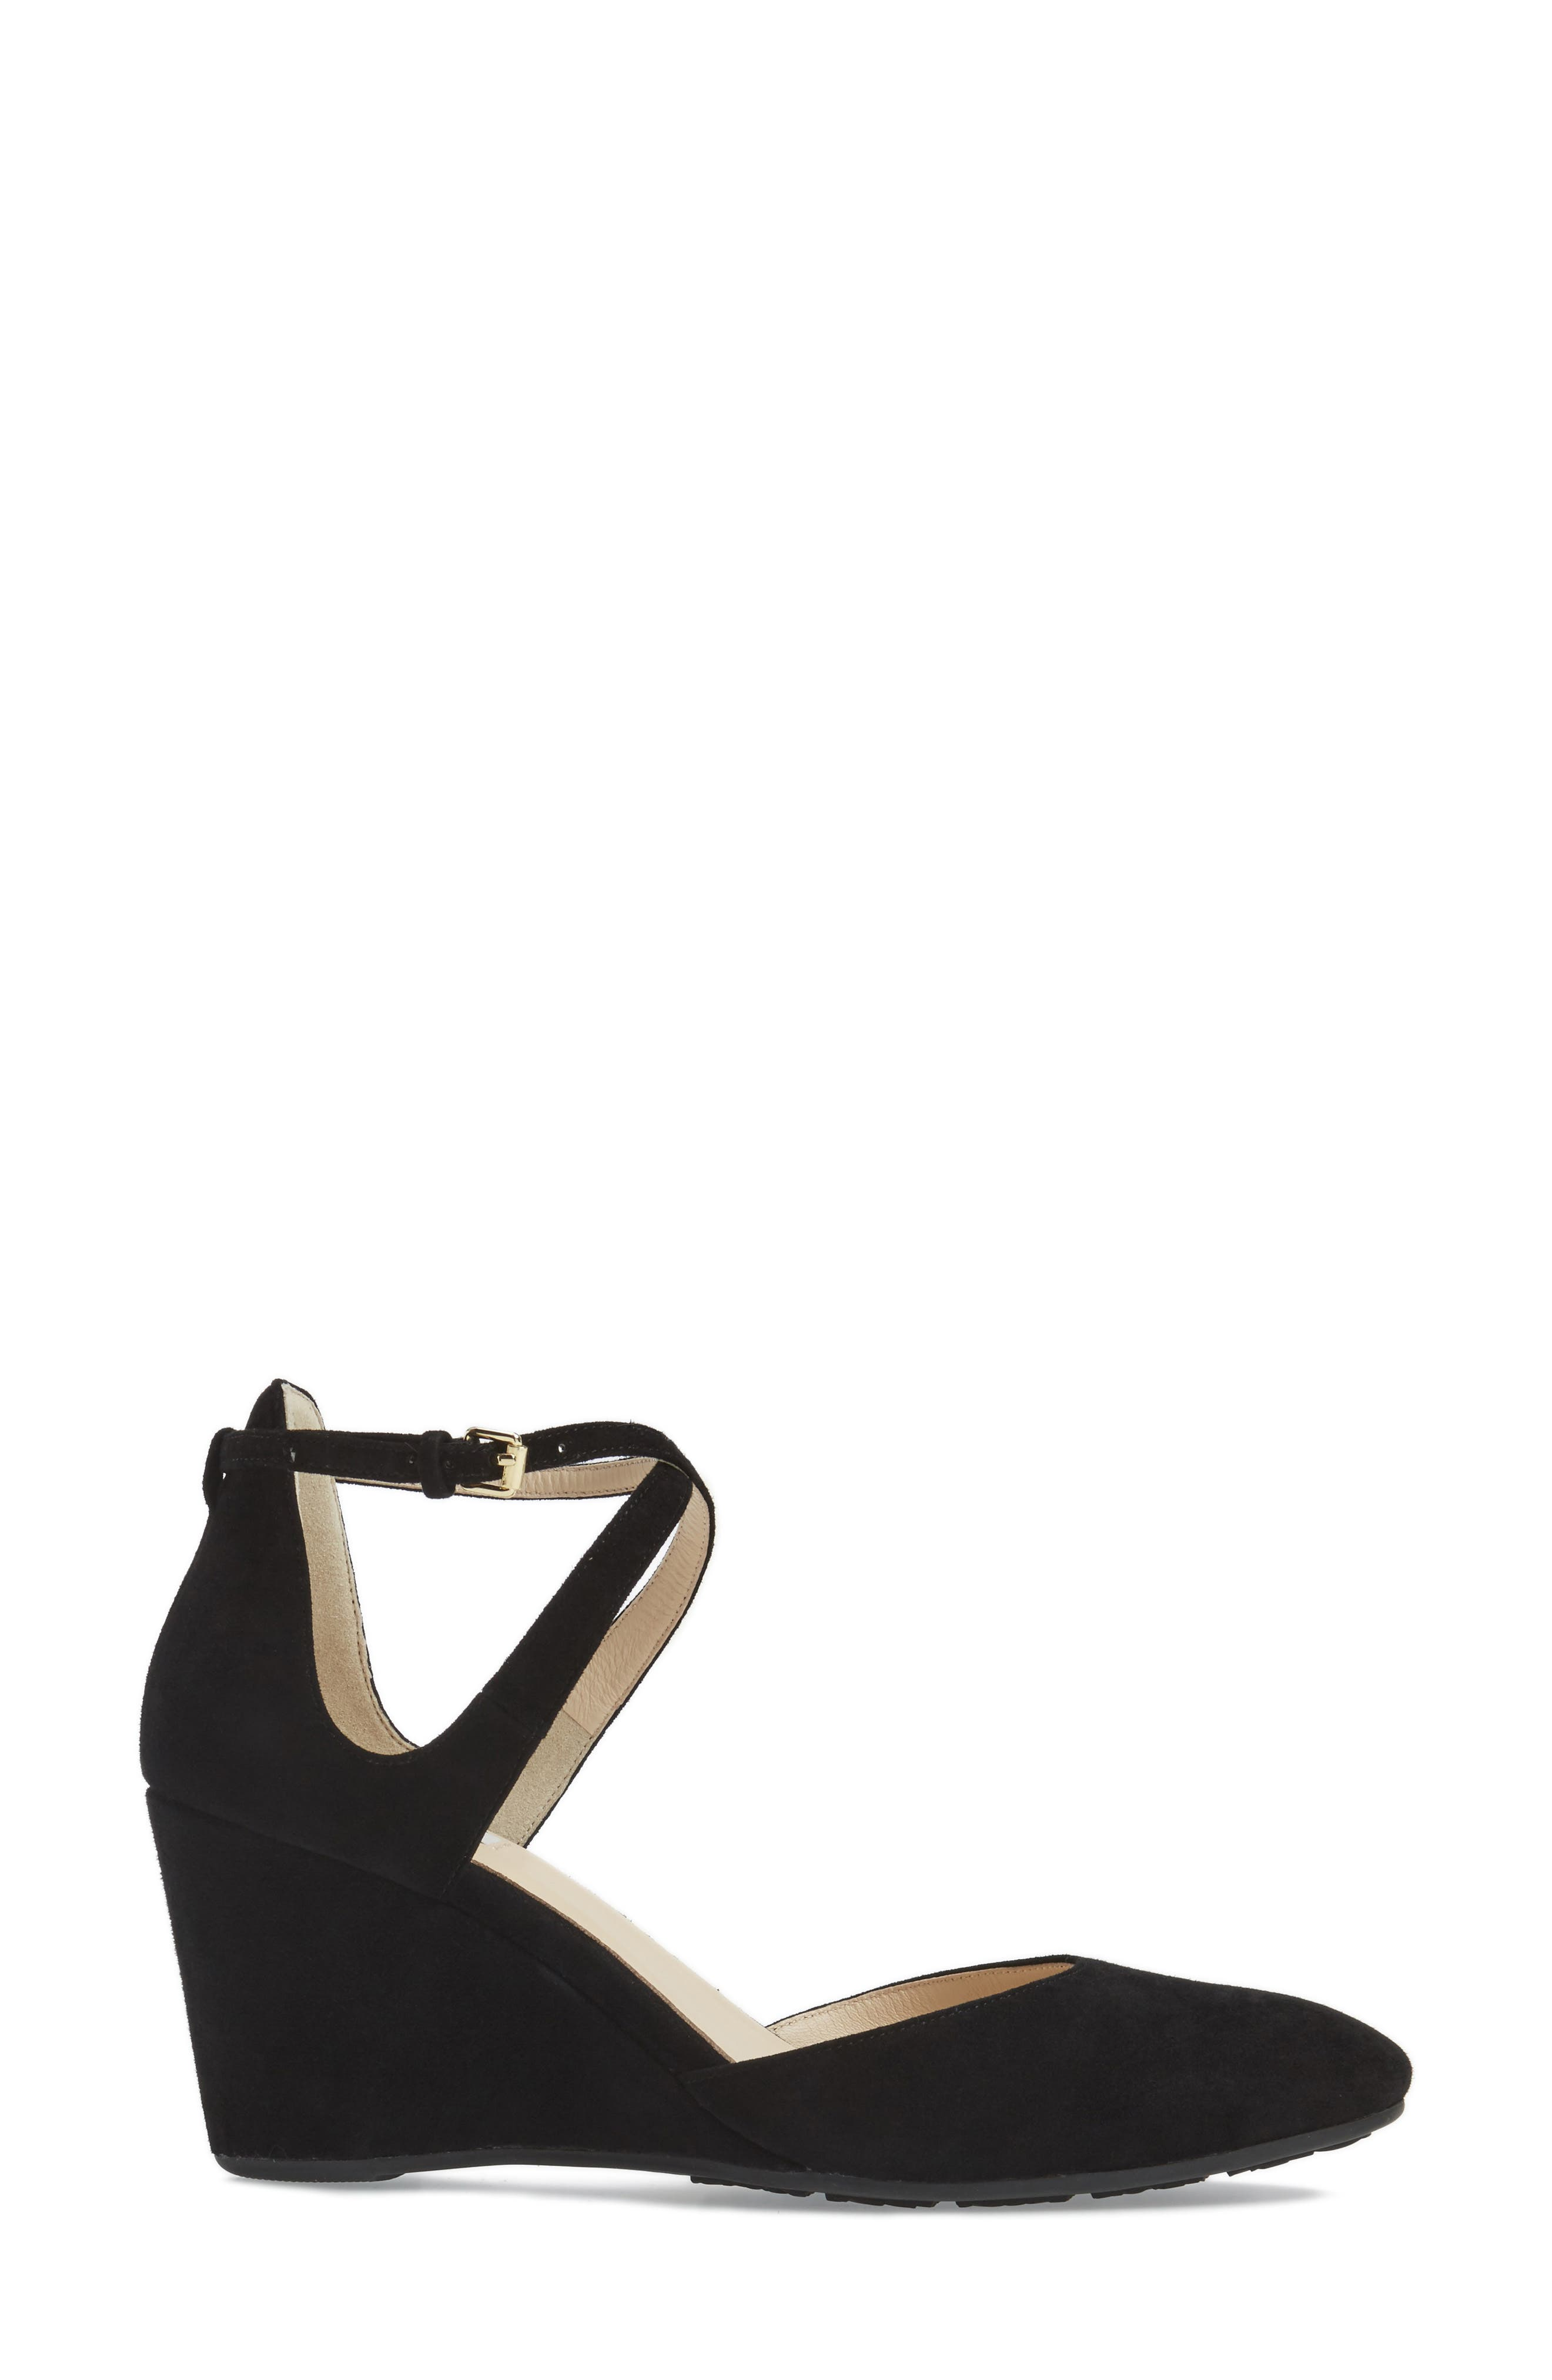 Lacey Ankle Strap Wedge Pump,                             Alternate thumbnail 3, color,                             001